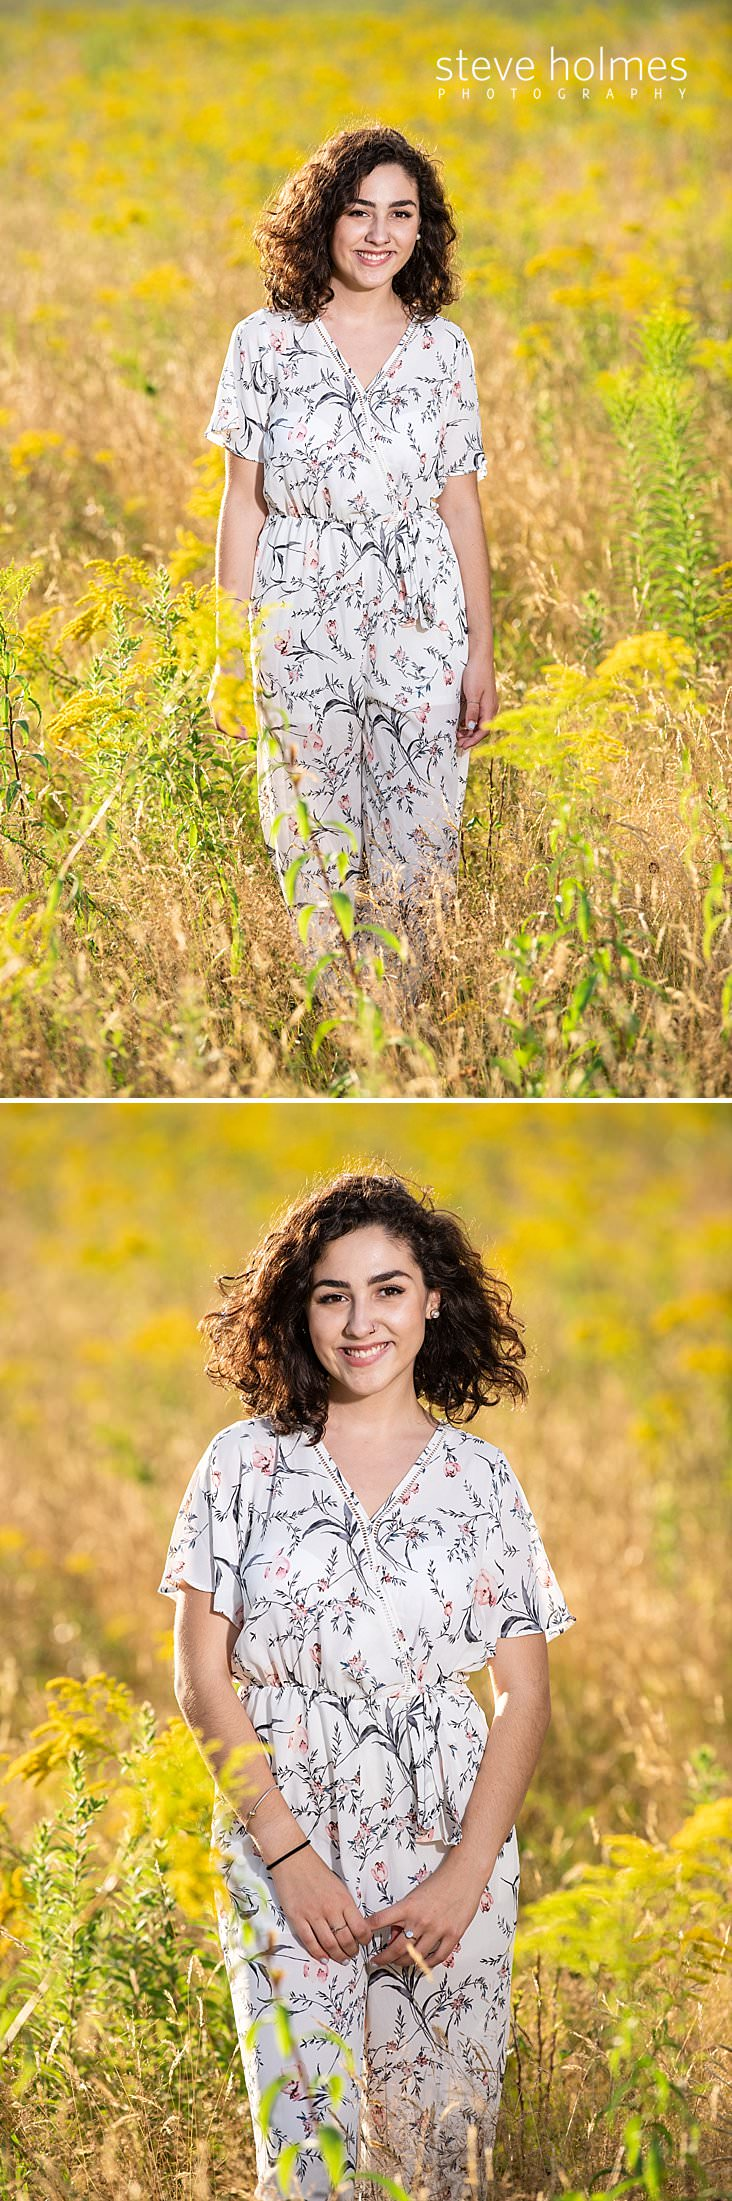 10_Curly haired brunette in jumper walks in a field for senior photo.jpg